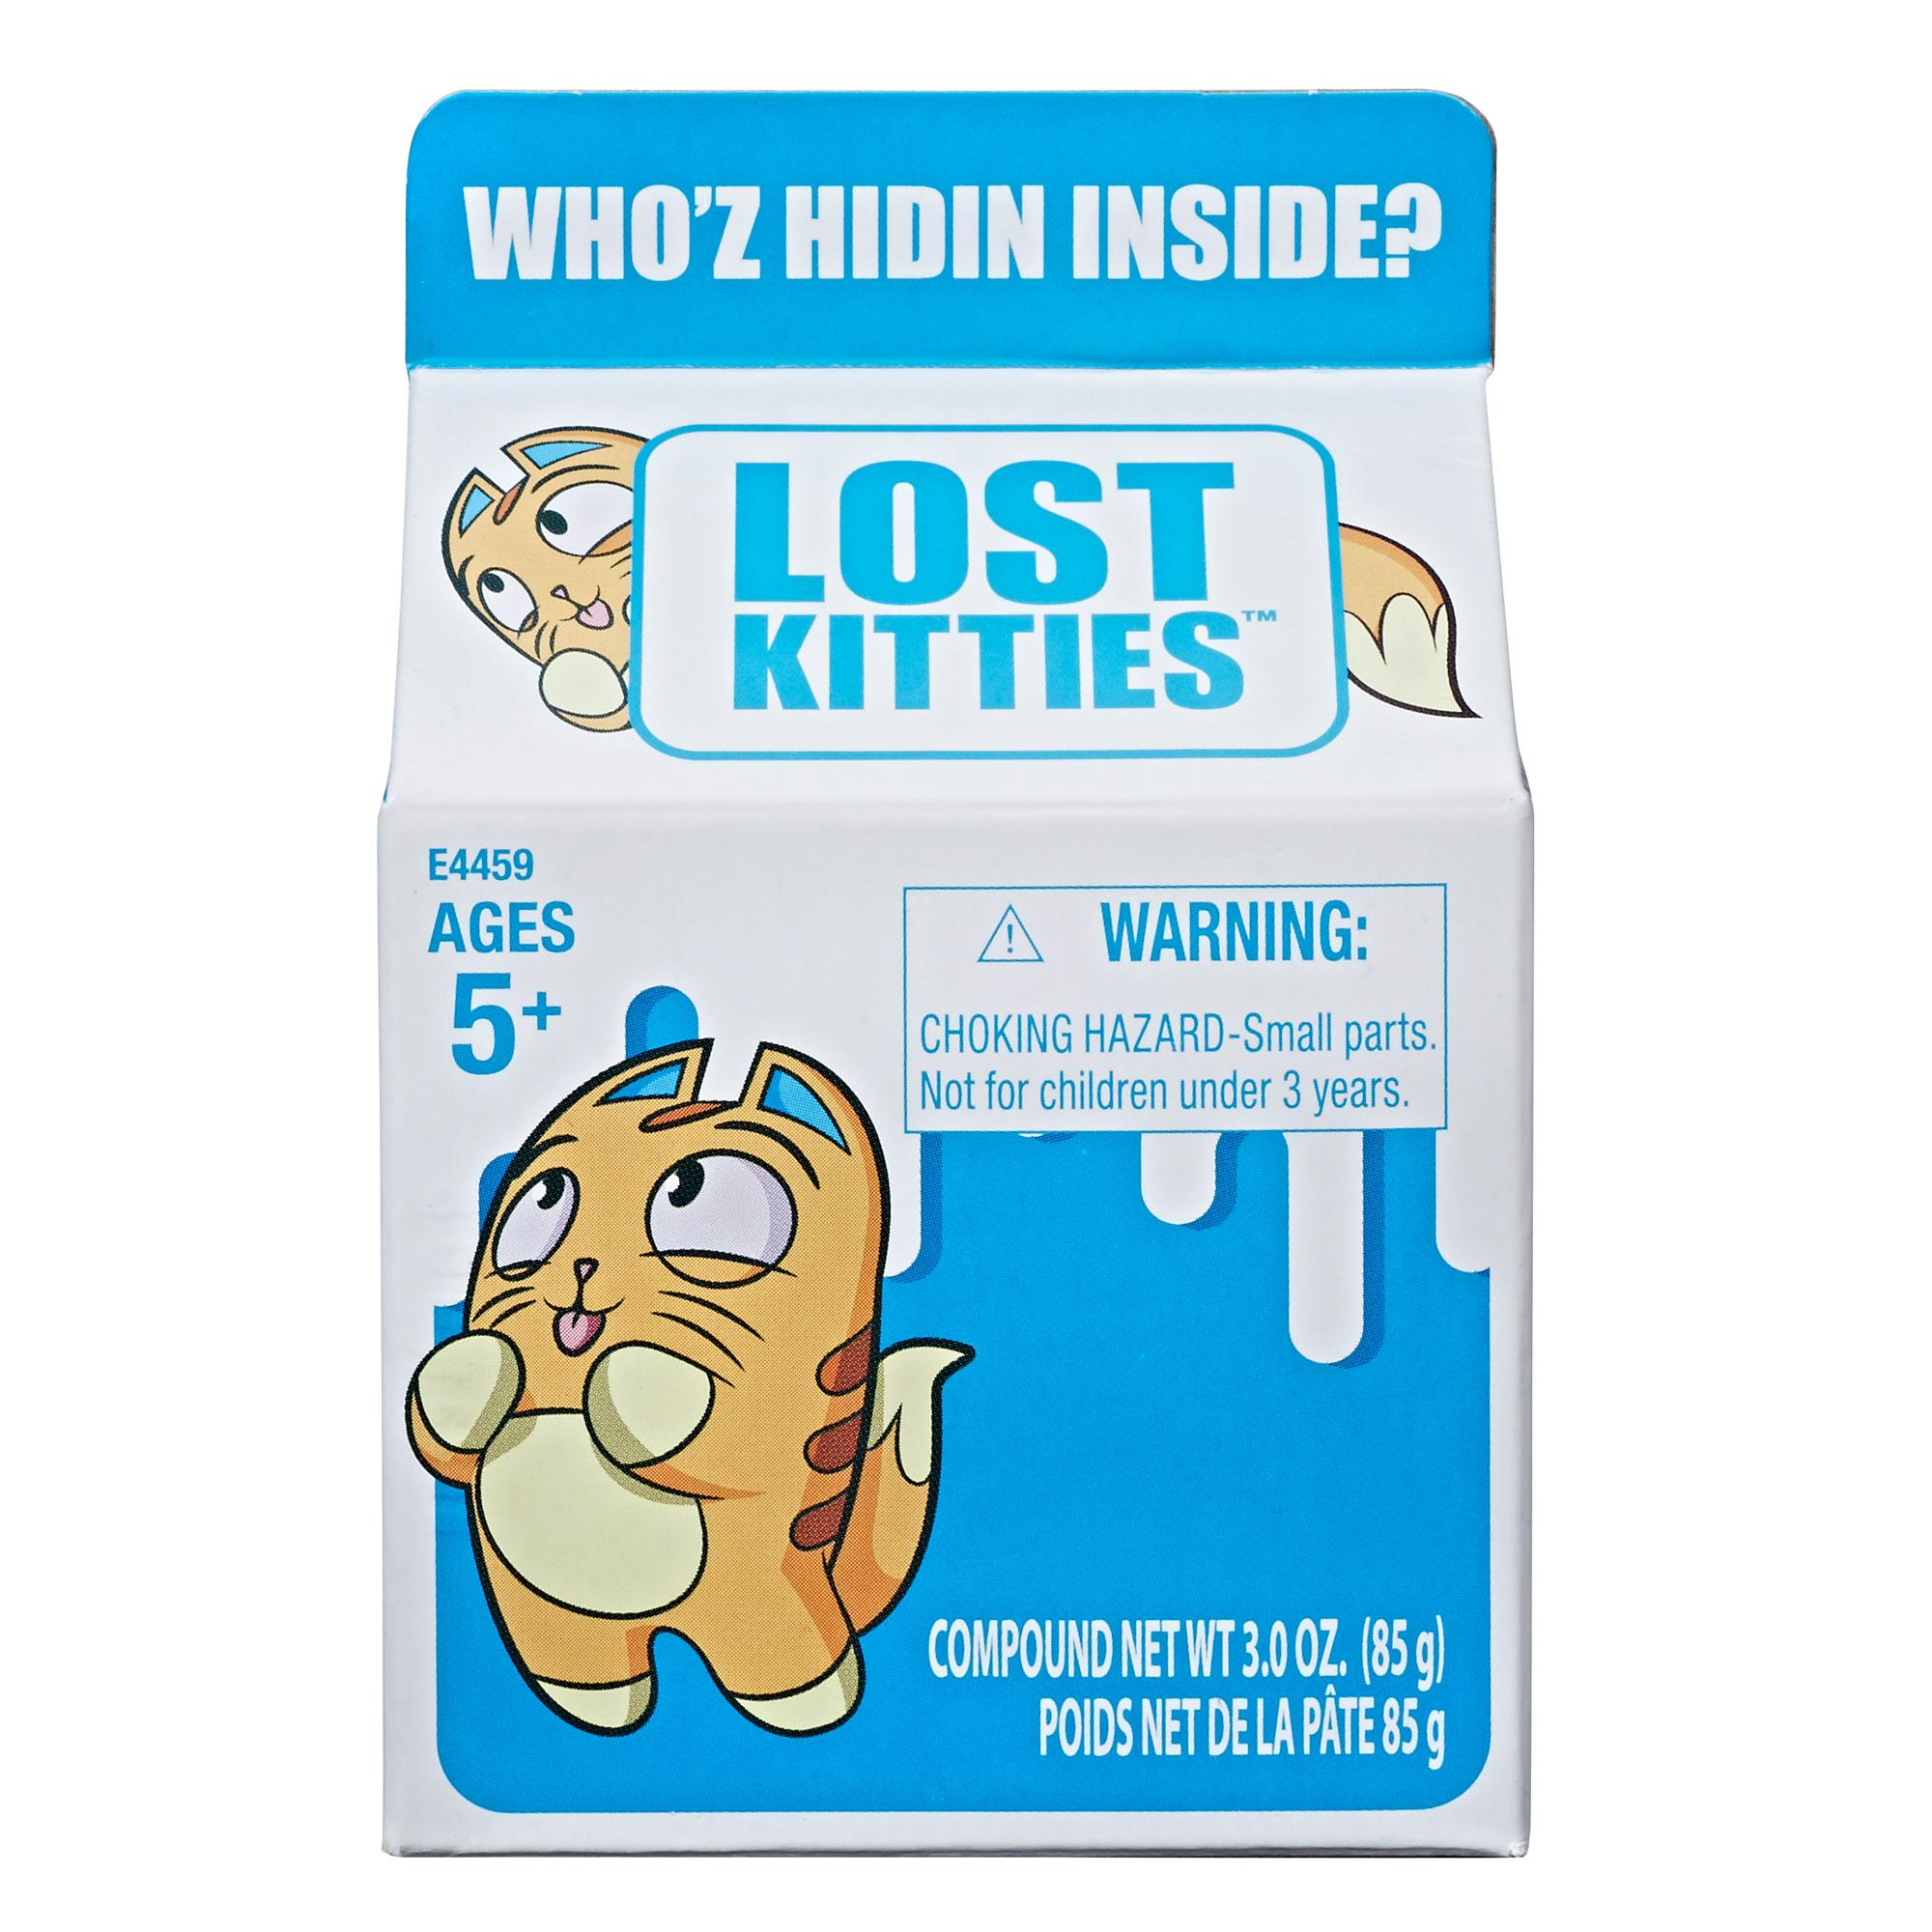 OTR LOST KITTIES BLIND BOX